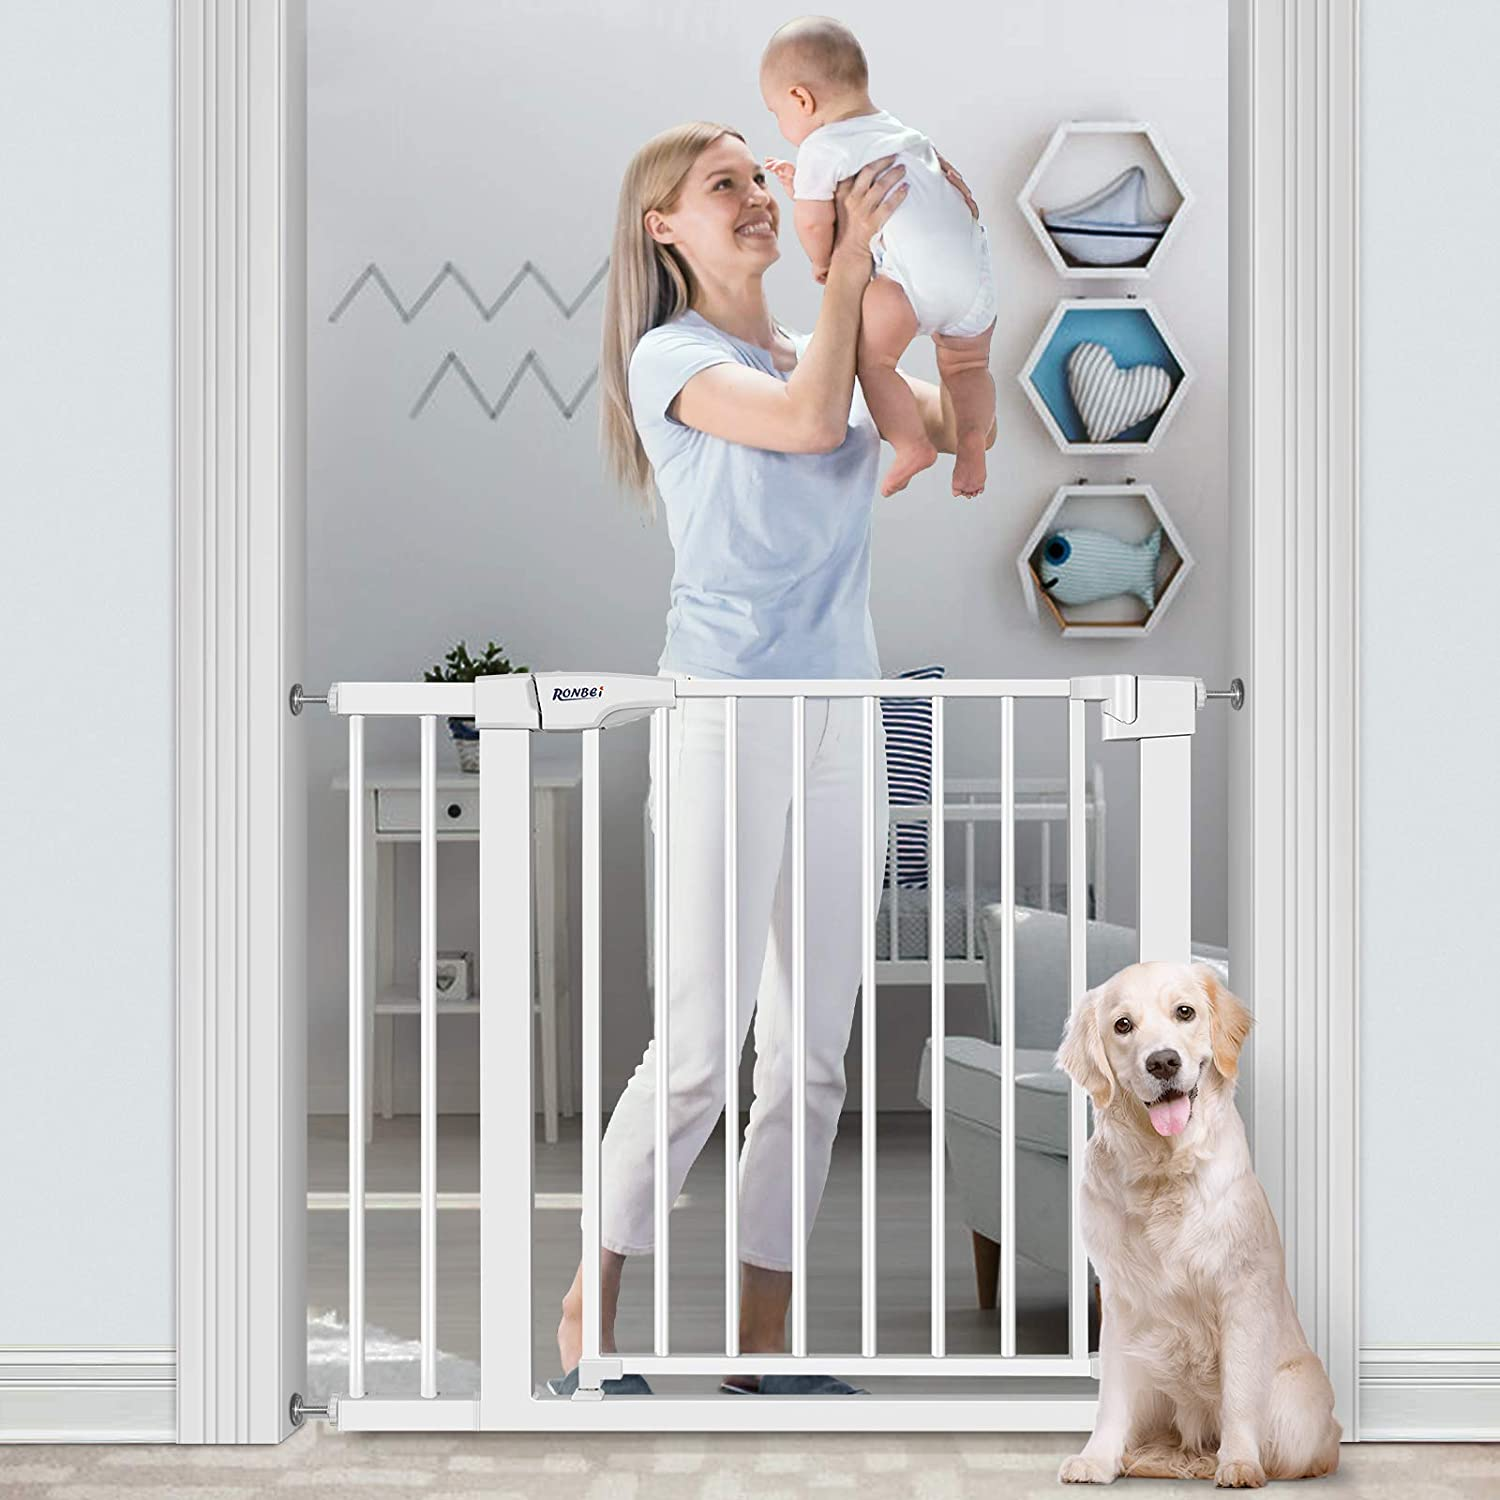 1 Wrench-Black 29.53-37.8// 29.53-32.28 Auto Close Indoor Child Gates for Kids//Dogs Easy Walk Thru Safety Gate with 5.5 Extension,4 Mounting Kit RONBEI Baby Gate for Stairs and Doorways